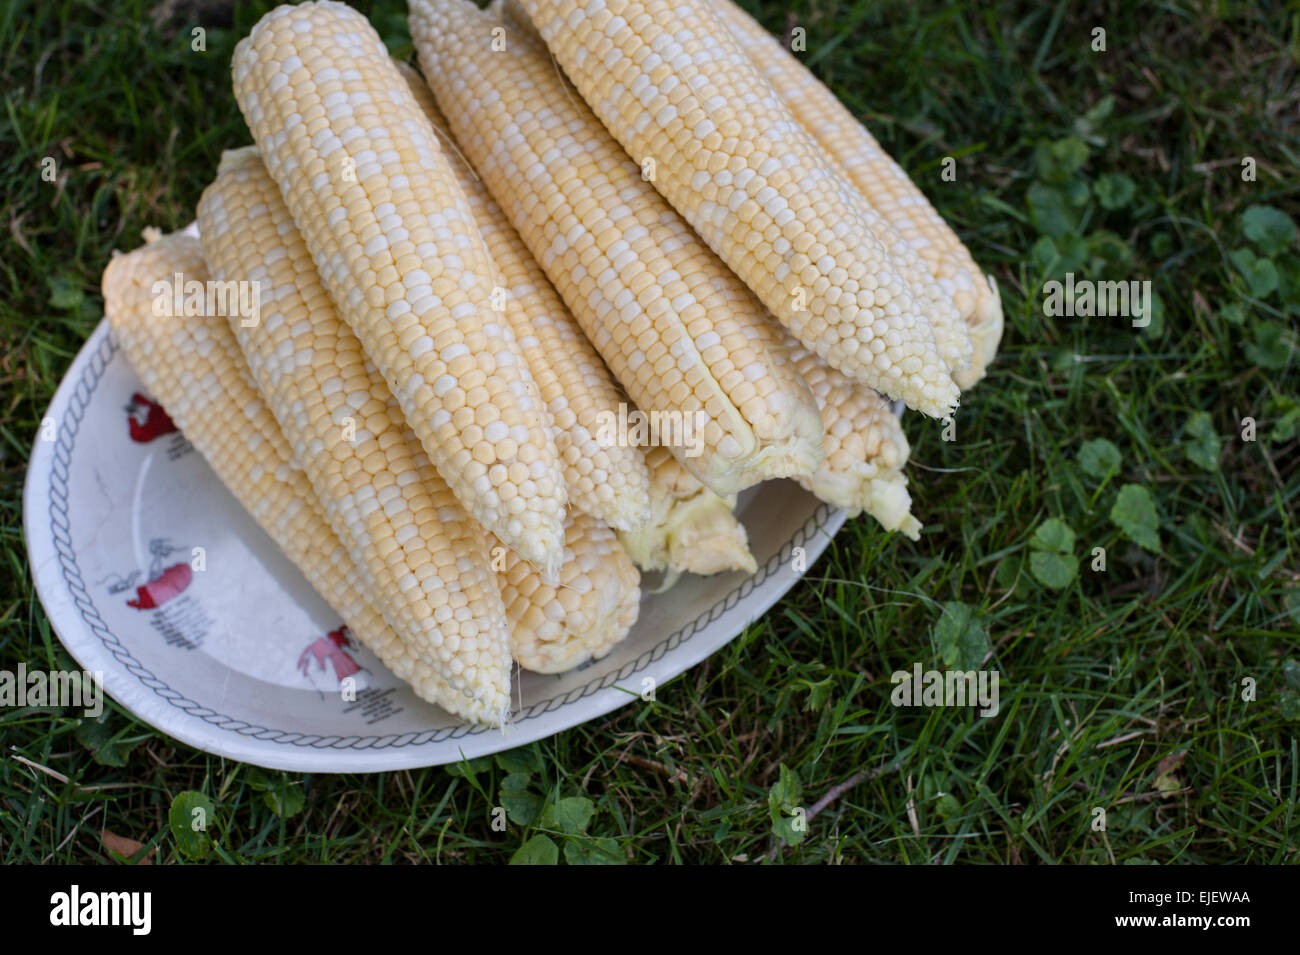 Peaches and cream (bicolour) corn husked and ready to cook on a platter on the grass. Stock Photo